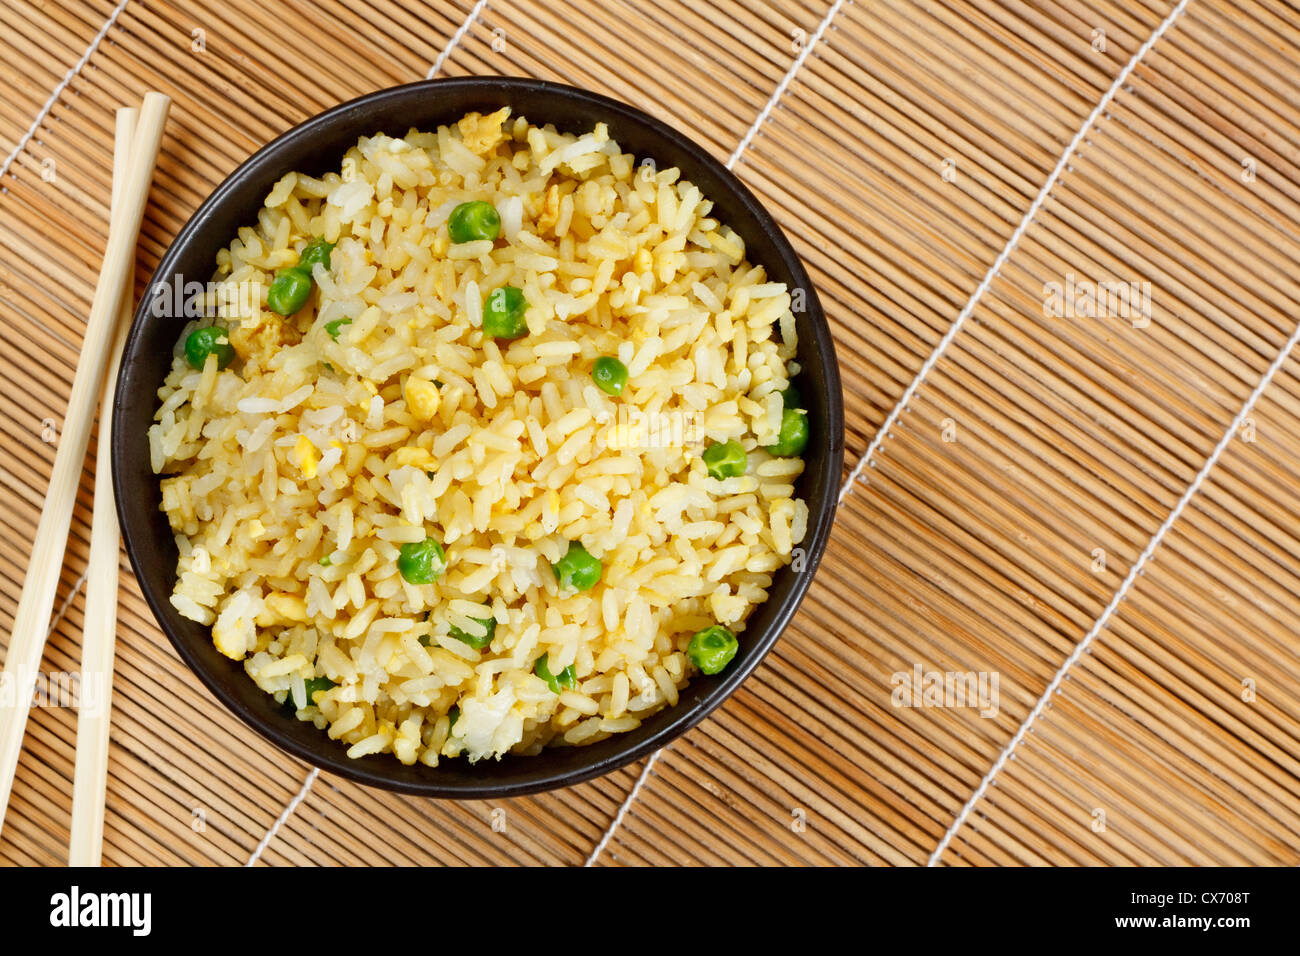 Bowl of egg fried rice an excellent side order with chinese food - Stock Image